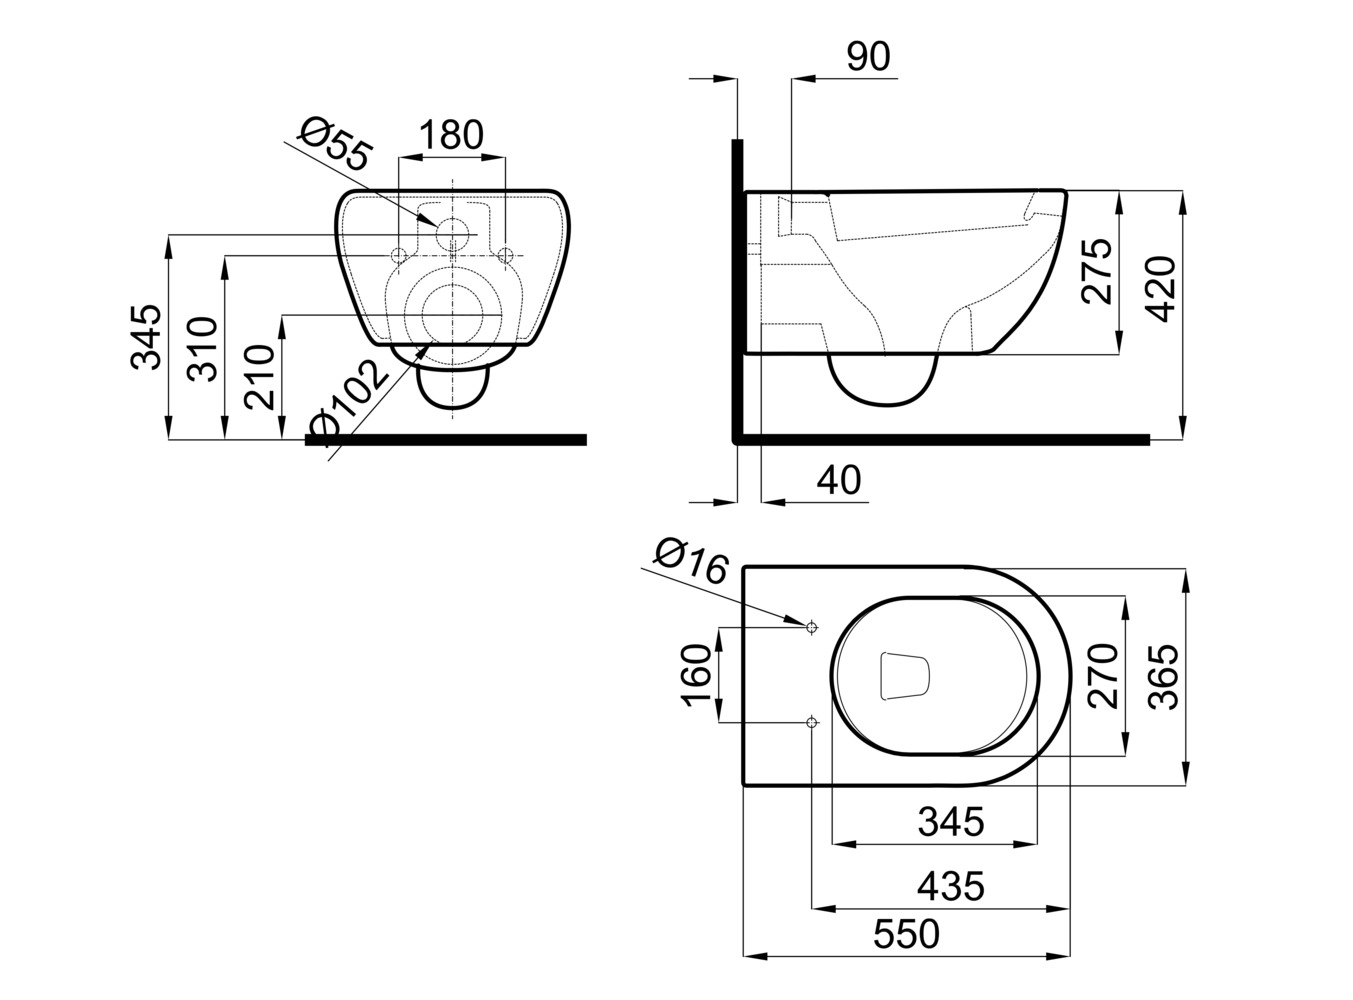 Sinks, Toilets, Shower Heads and Faucets Elements in CAD